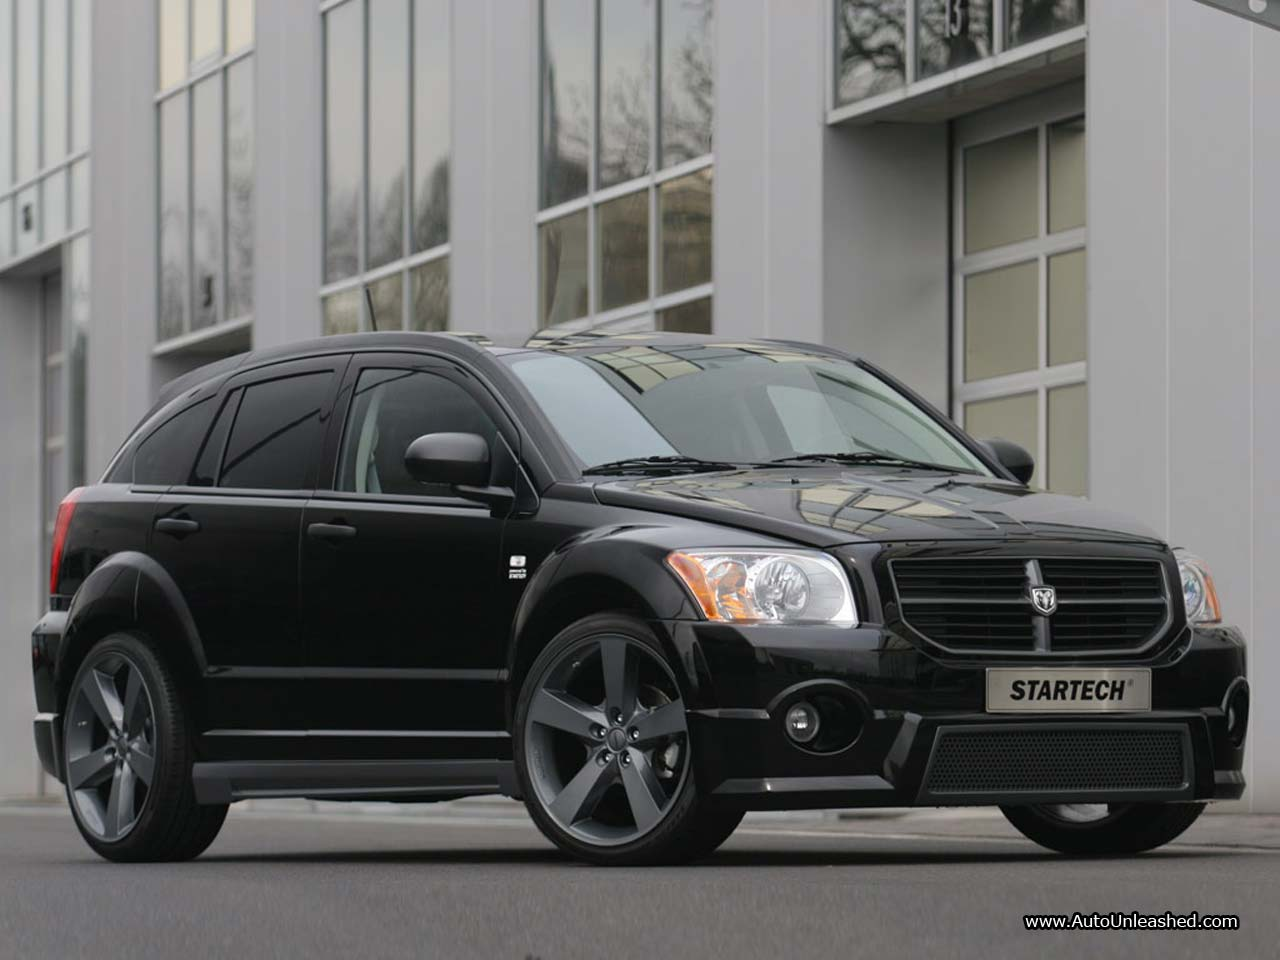 Cars dodge caliber 2010